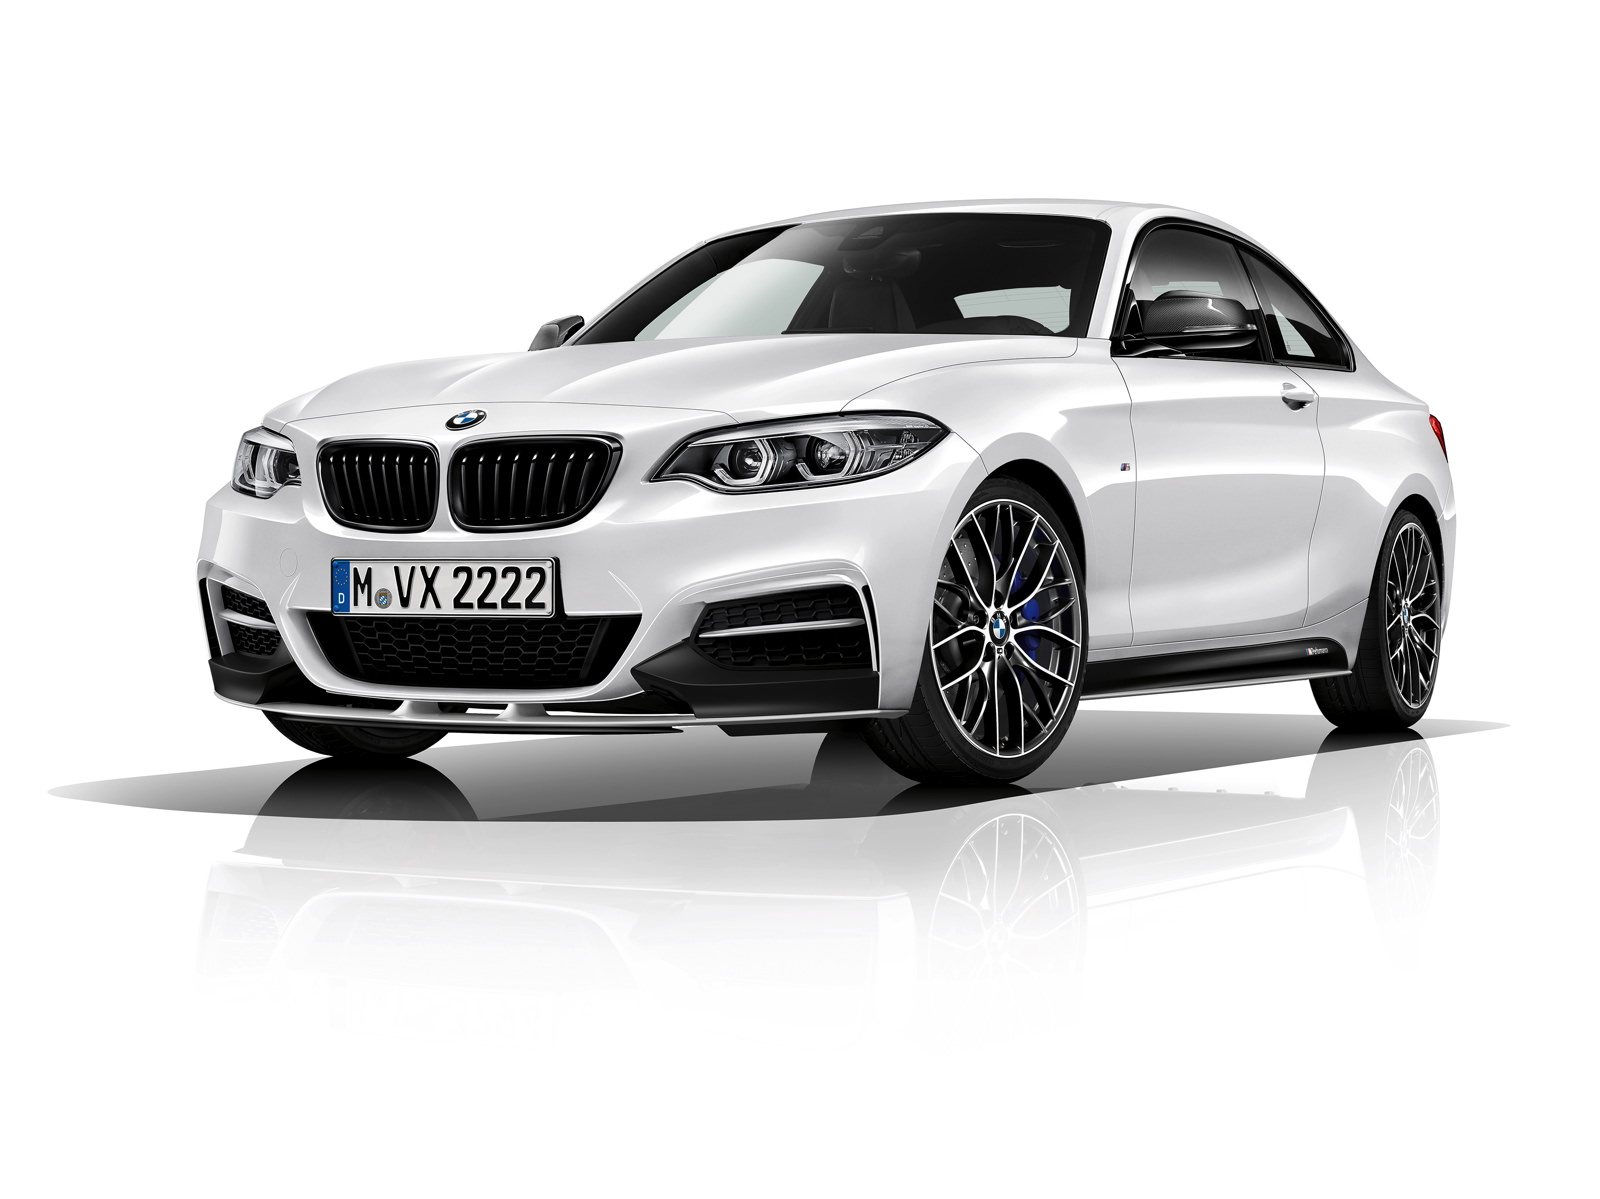 Bmw Introduces The M240i M Performance Edition Limited To 750 Units